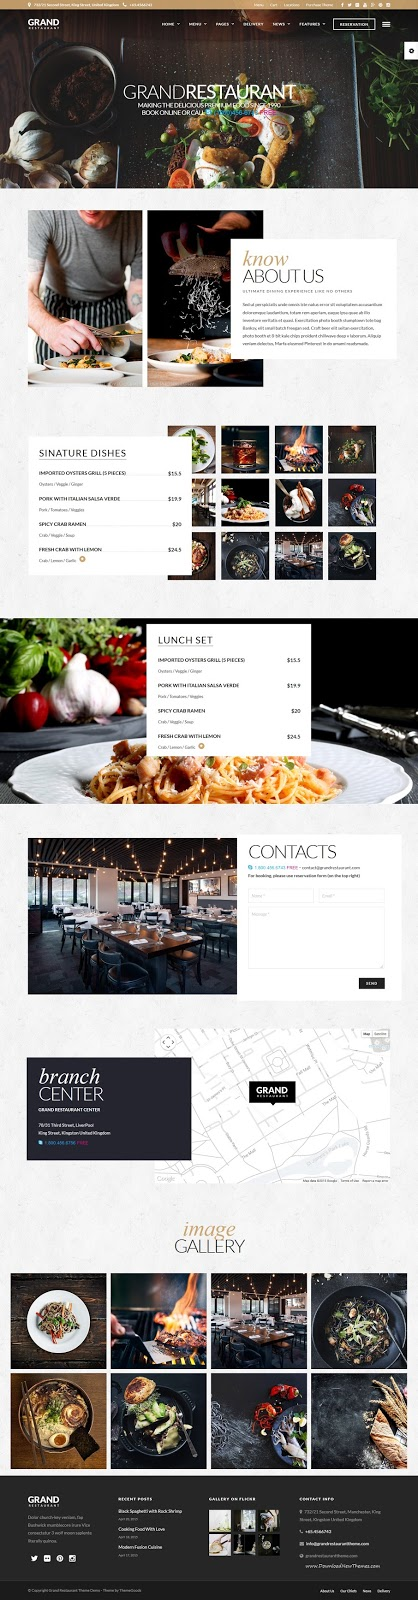 Best Responsive WordPress Restaurant Theme 2015